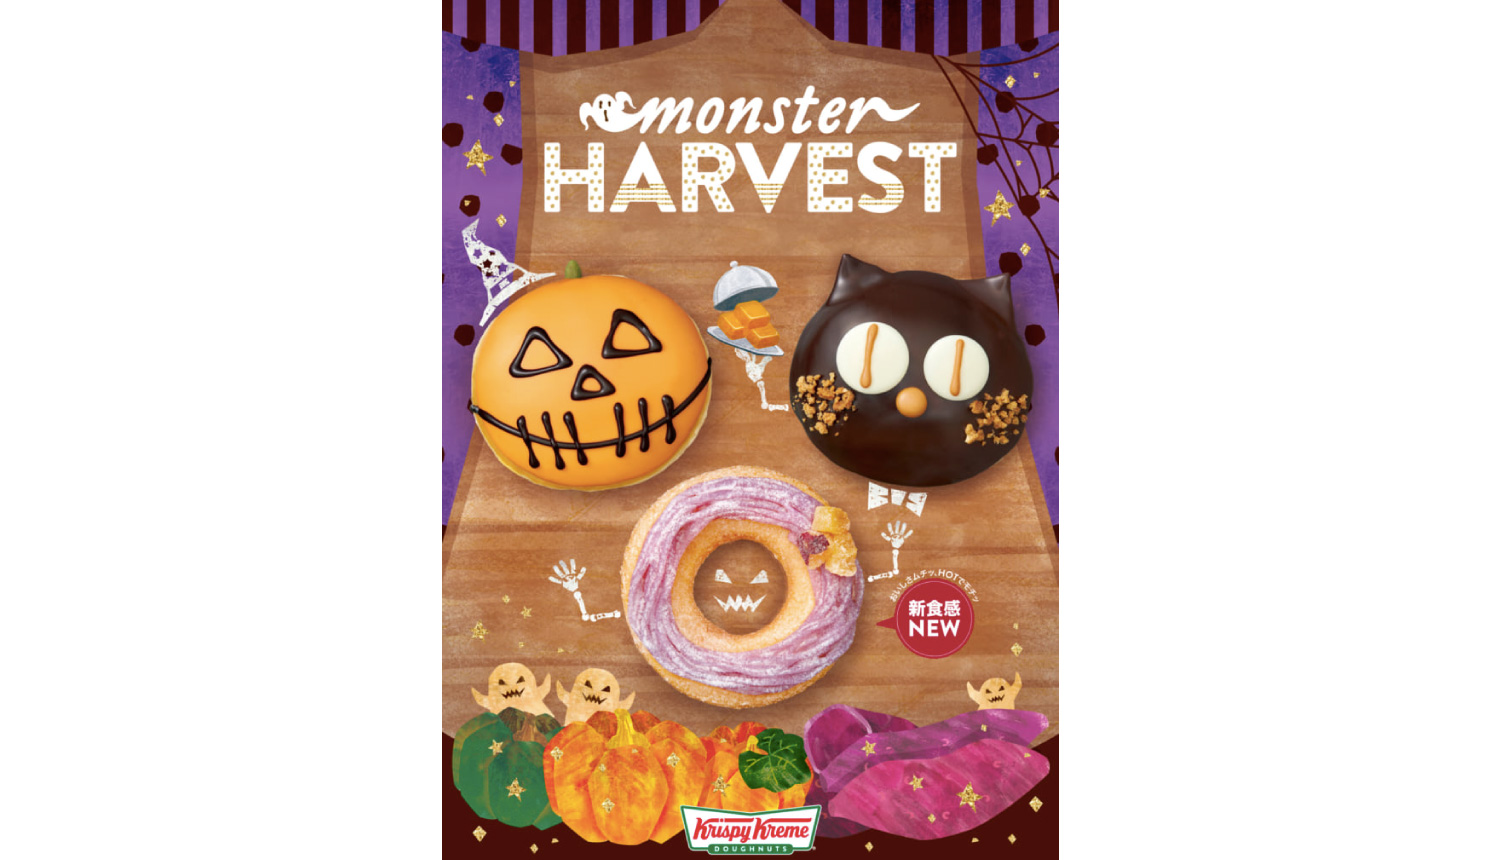 _クリスピー・クリーム・ドーナツ「monster-HARVEST」-Krispy-Kreme-Doughnuts-甜點-甜甜圈_